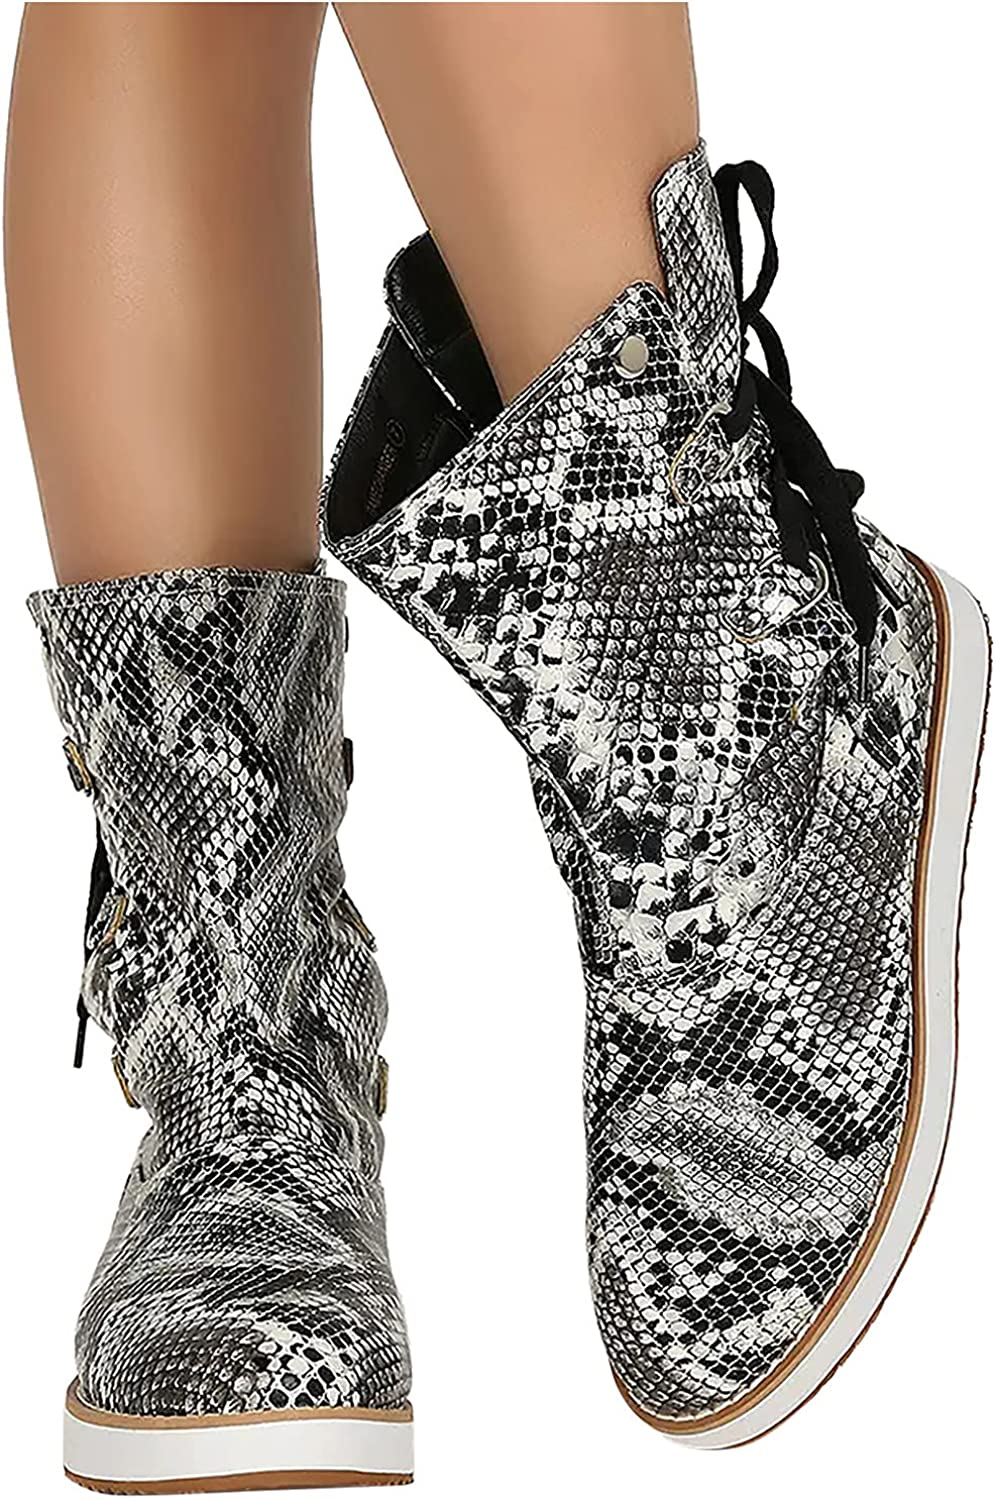 Cowboy Boots For Women Plus Size Retro Stitching Sleeve Cross Strap Mid-Tube Boots